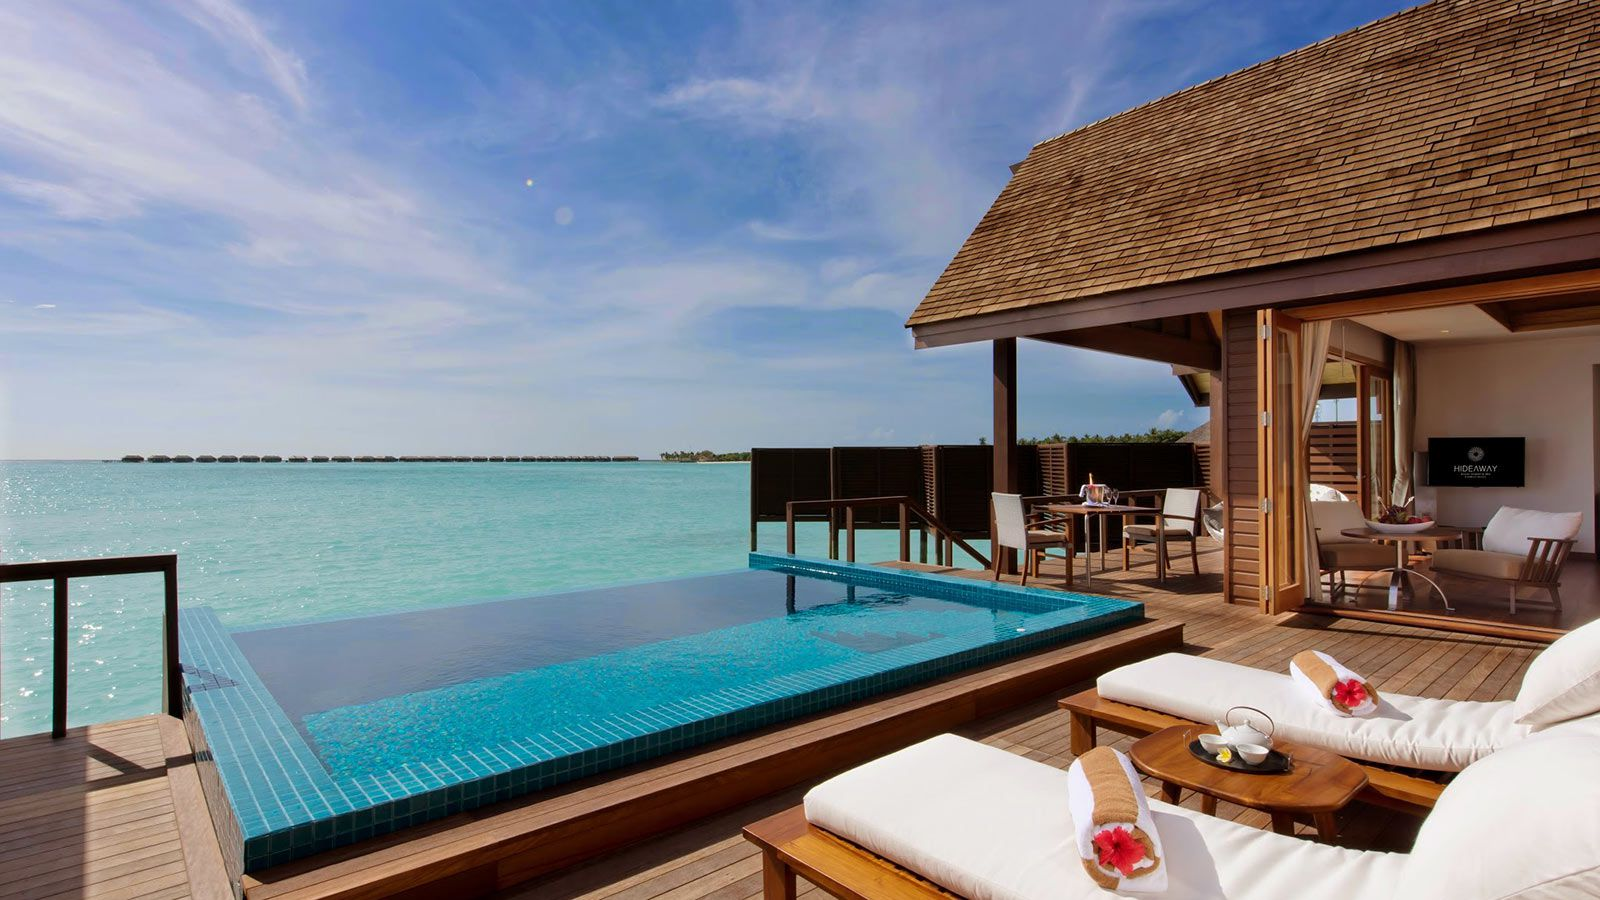 Maldives images hideaway luxury maldives resort image for Luxury beach hotels